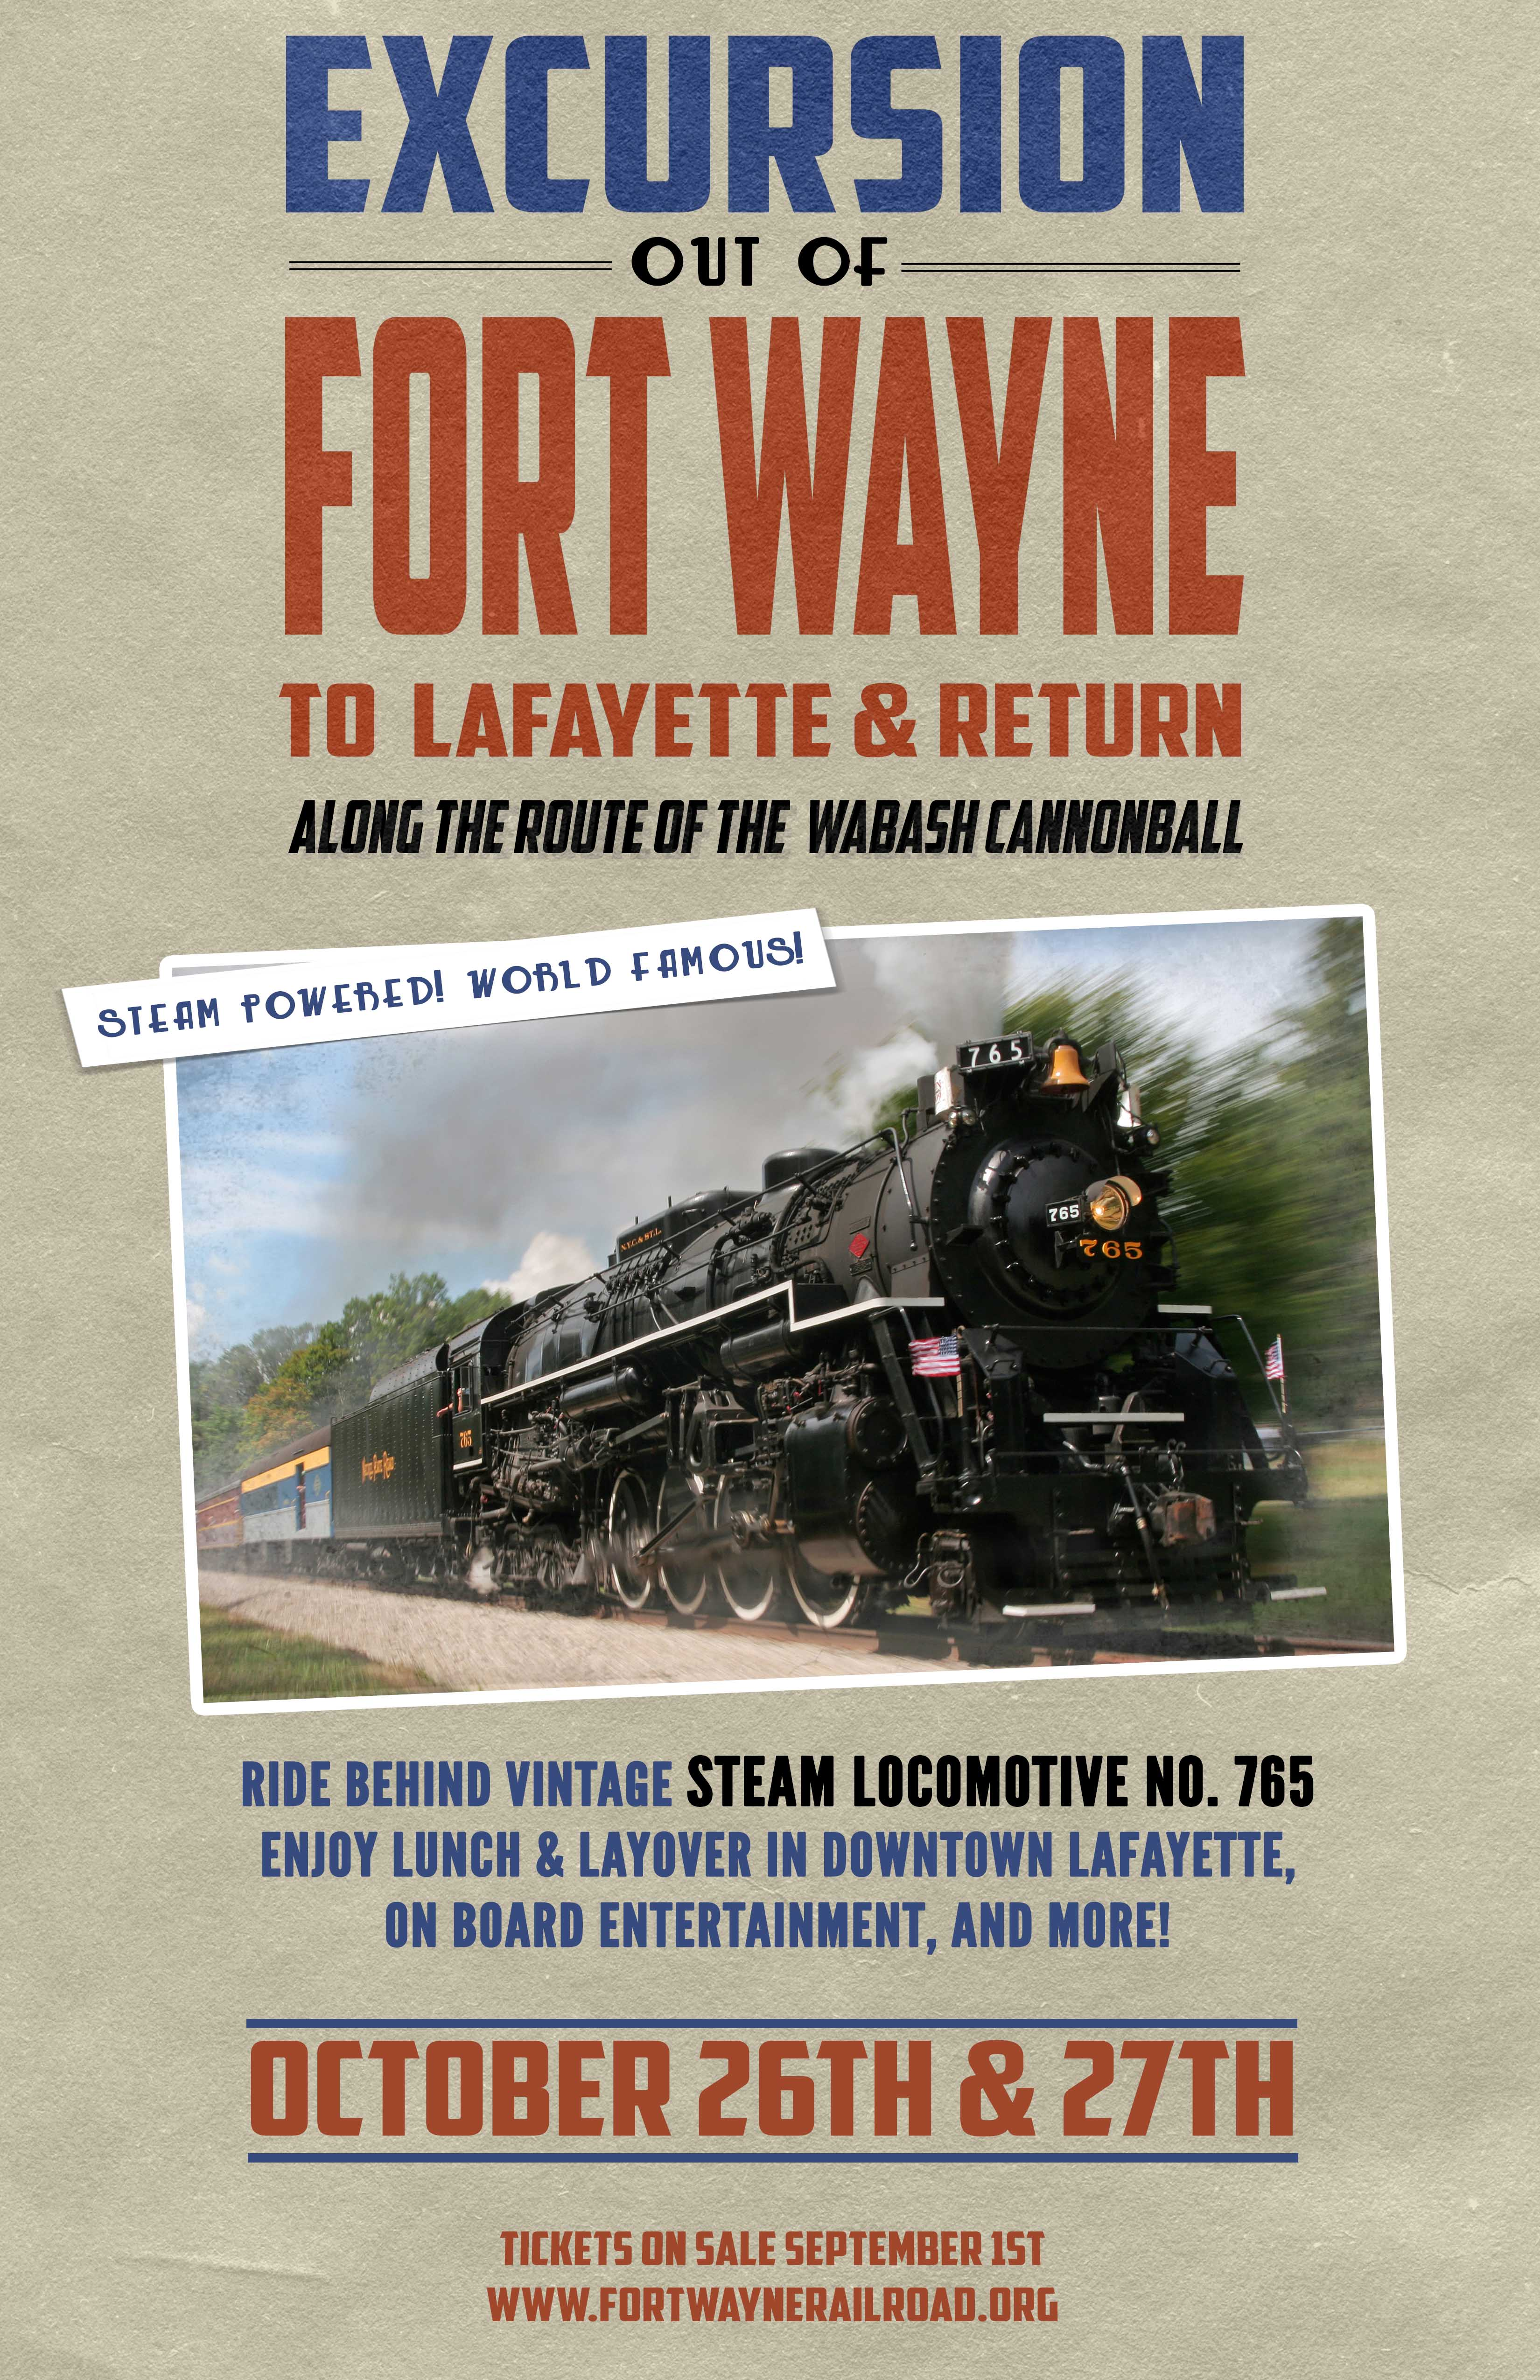 All Aboard Fort Wayne